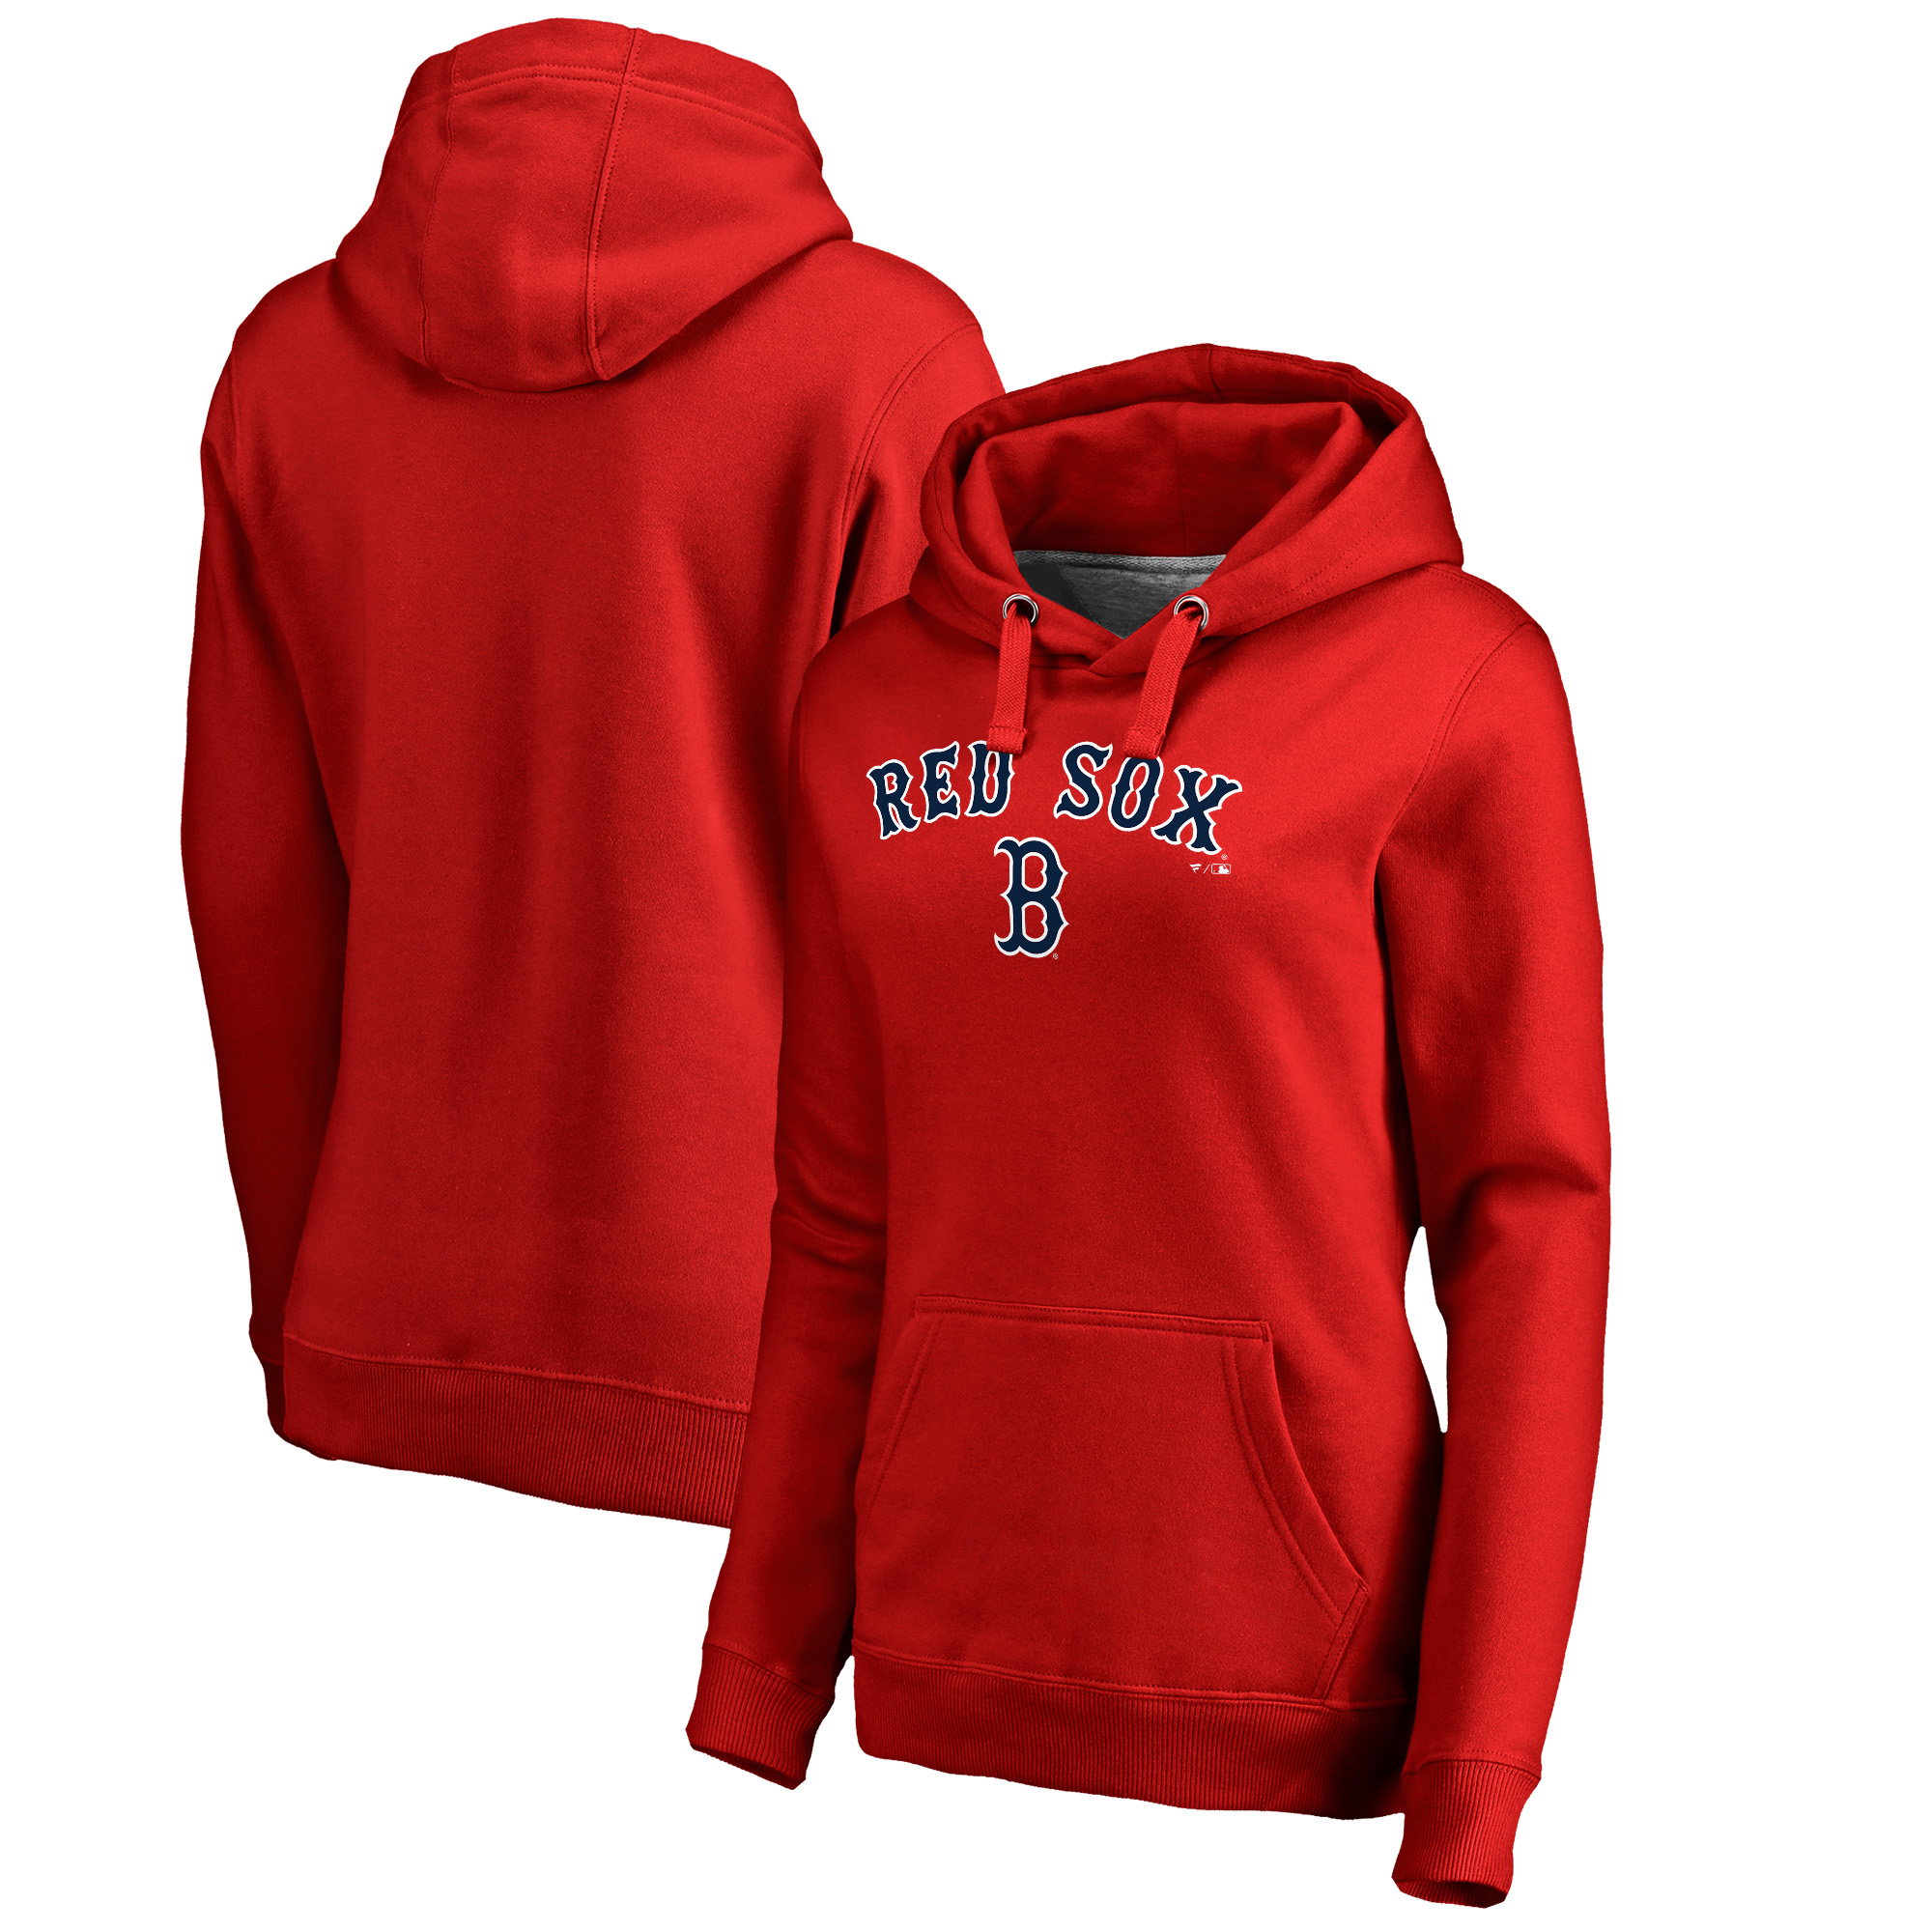 Boston Red Sox Fanatics Branded Women's Plus Size Team Lockup Pullover Hoodie - Red